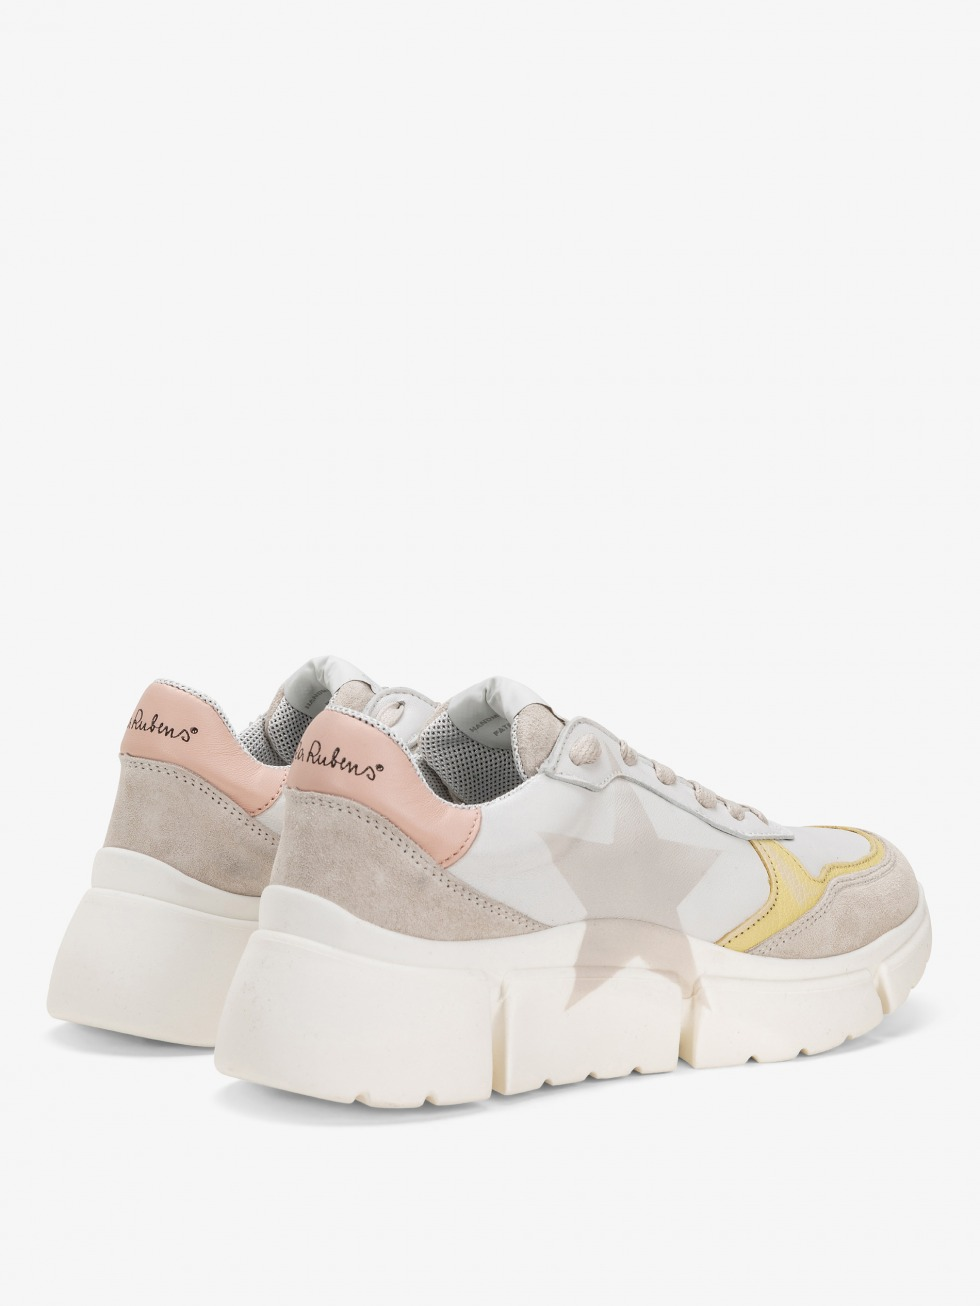 Stinger Chunky Sneakers Seventies - Star